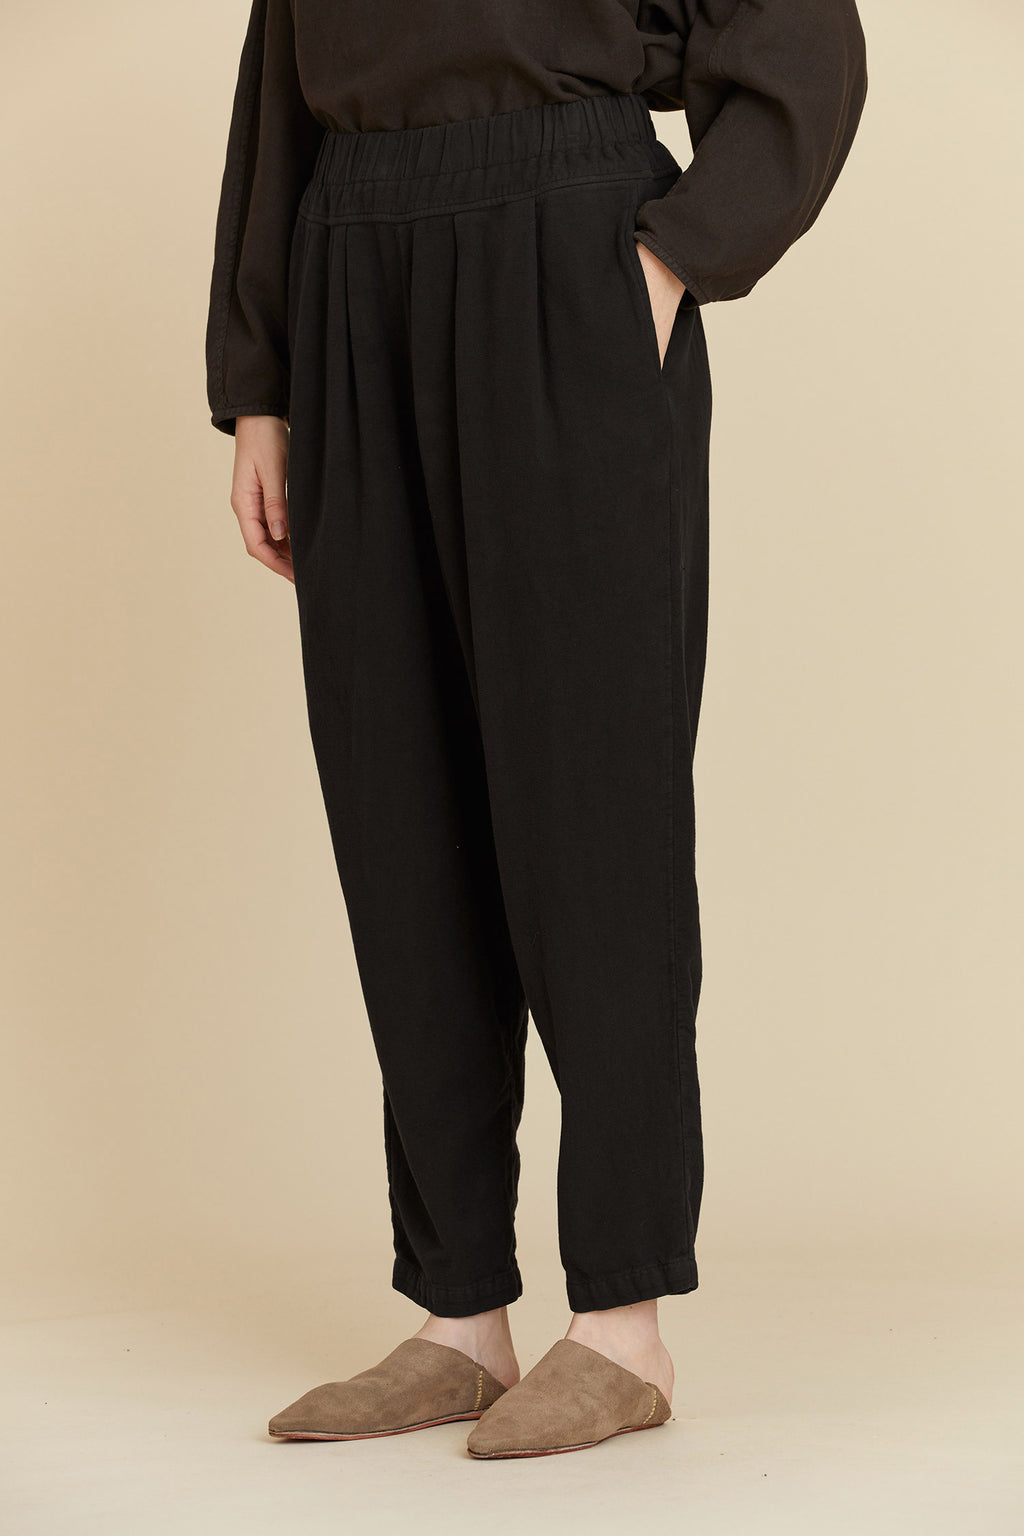 CARPENTER PANTS / HF-CP12 / BLACK